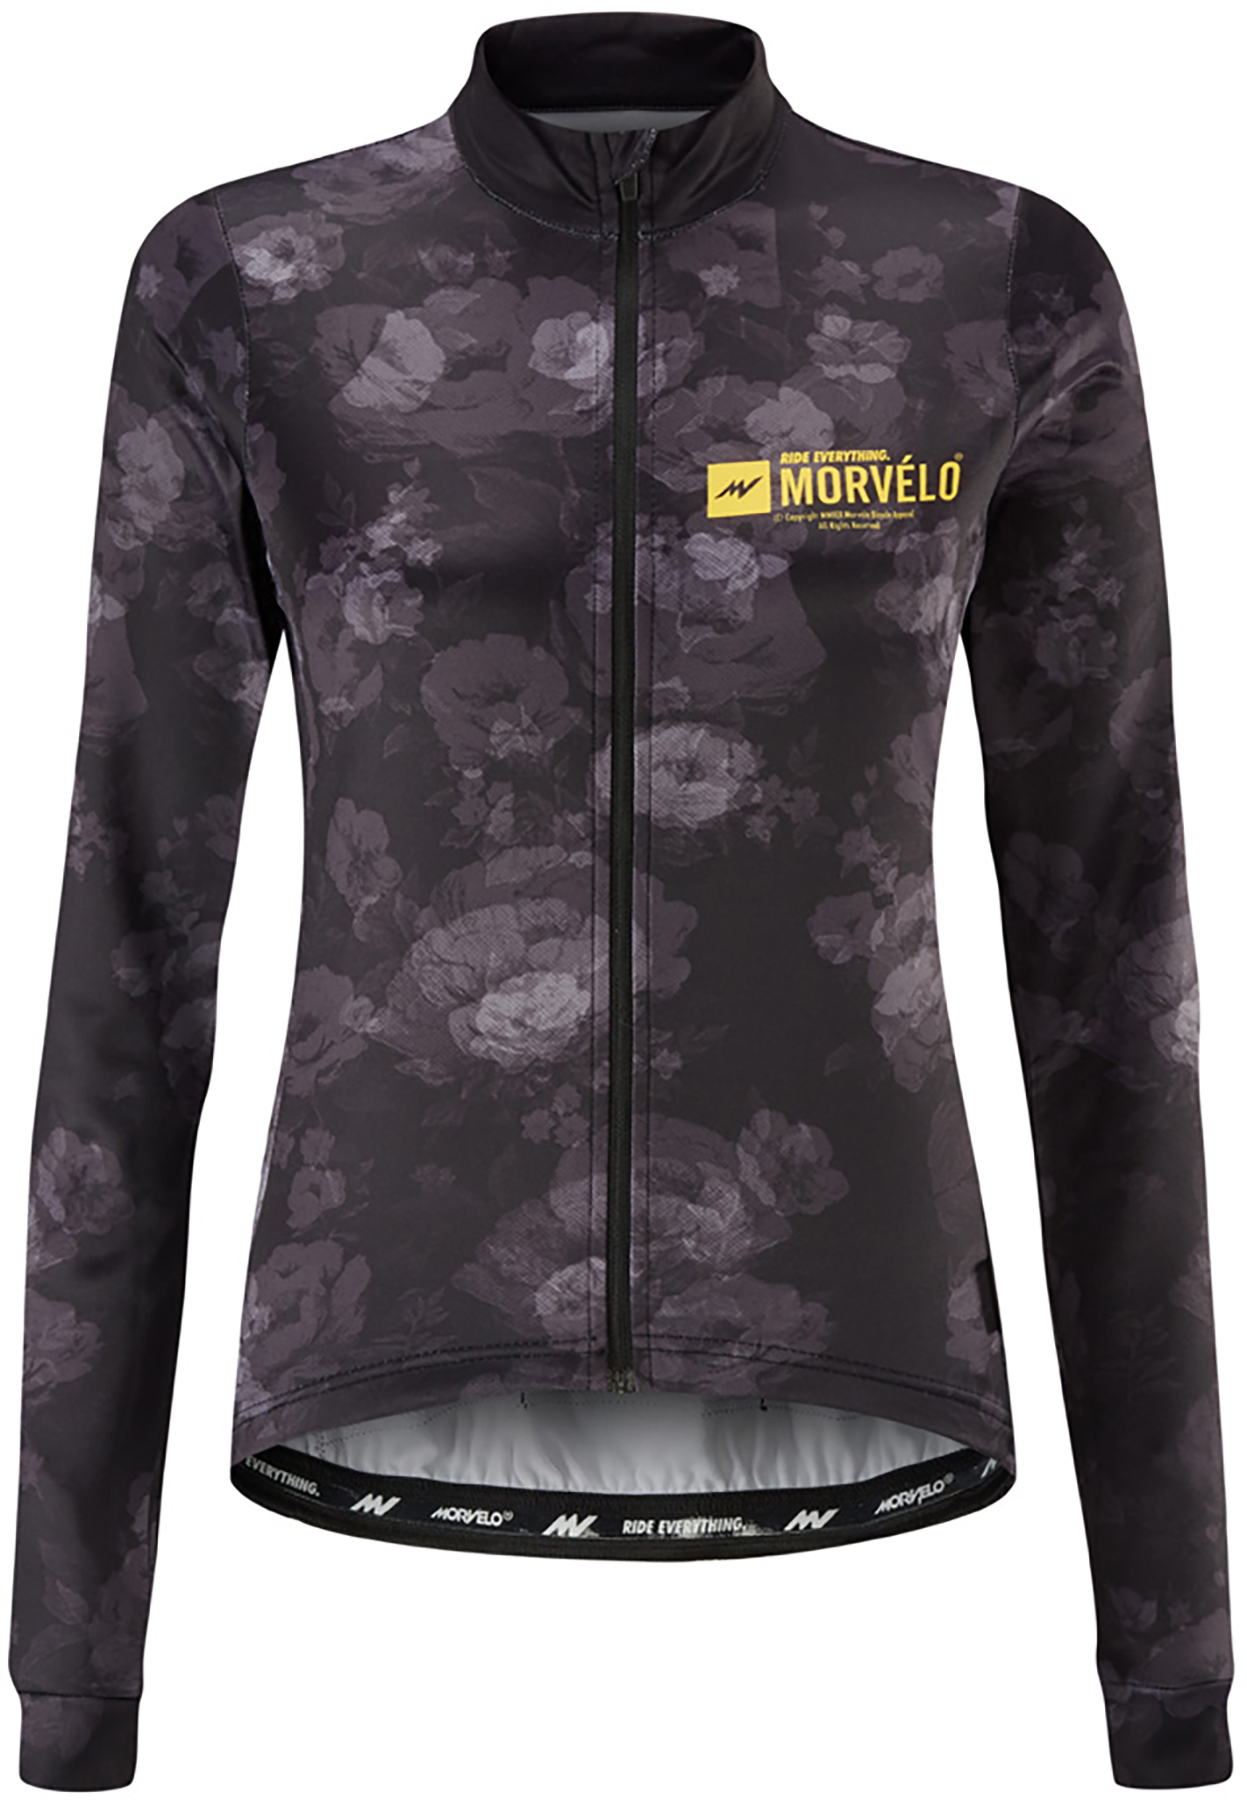 Morvelo Women's Digger Thermoactive Long Sleeve Jersey | Trøjer